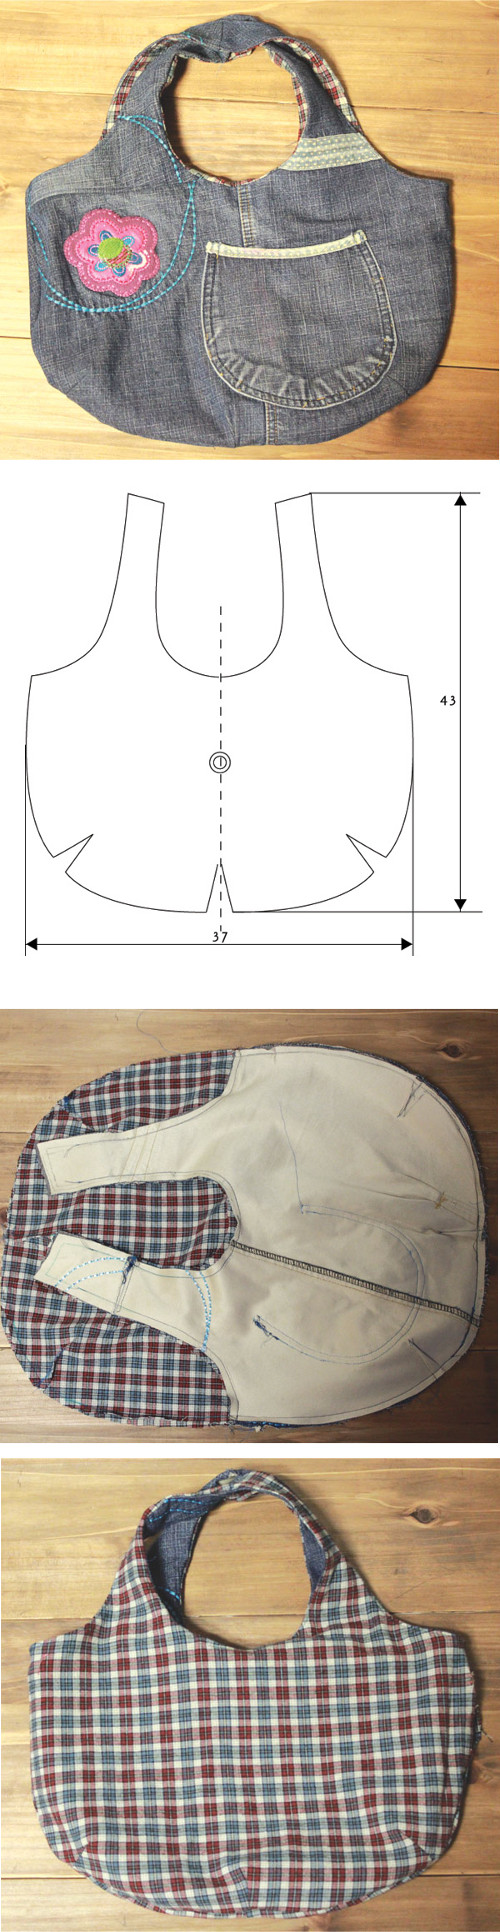 Easy Jeans Step to Step Bag http://fastmade.blogspot.com/2016/12 ...